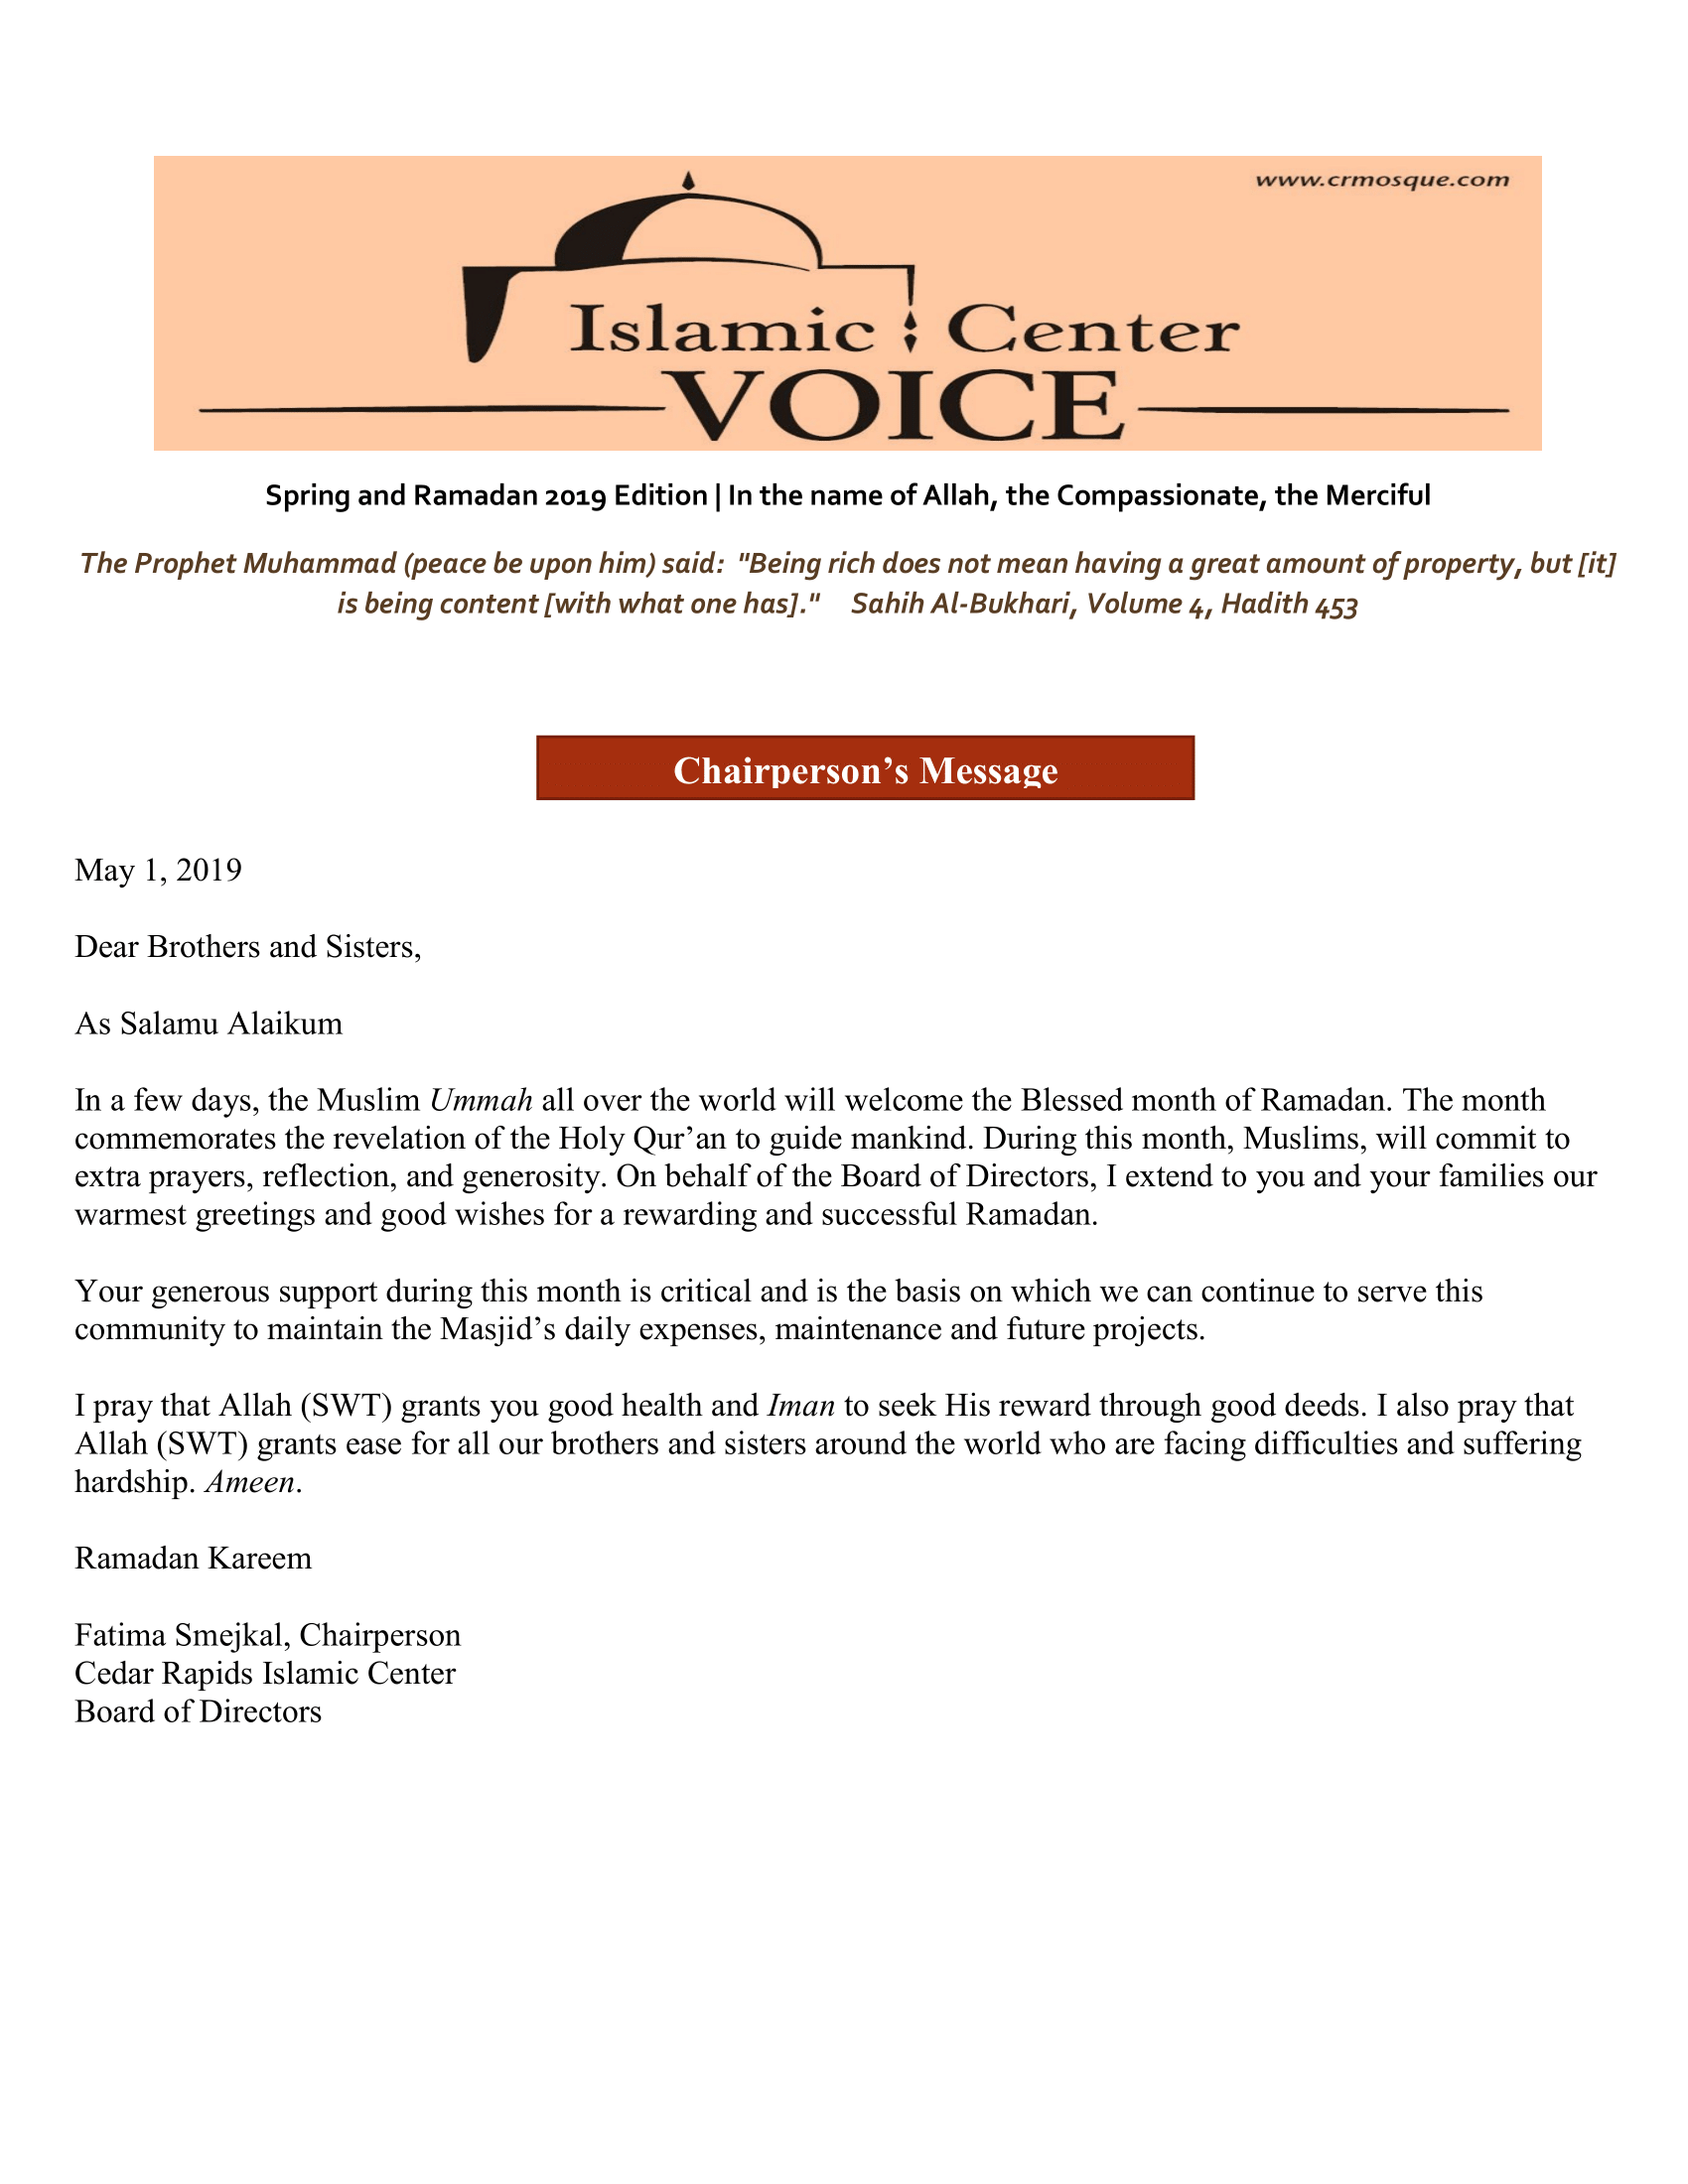 ICCR_Ramadan_2019_Newsletter_Revised-1.png